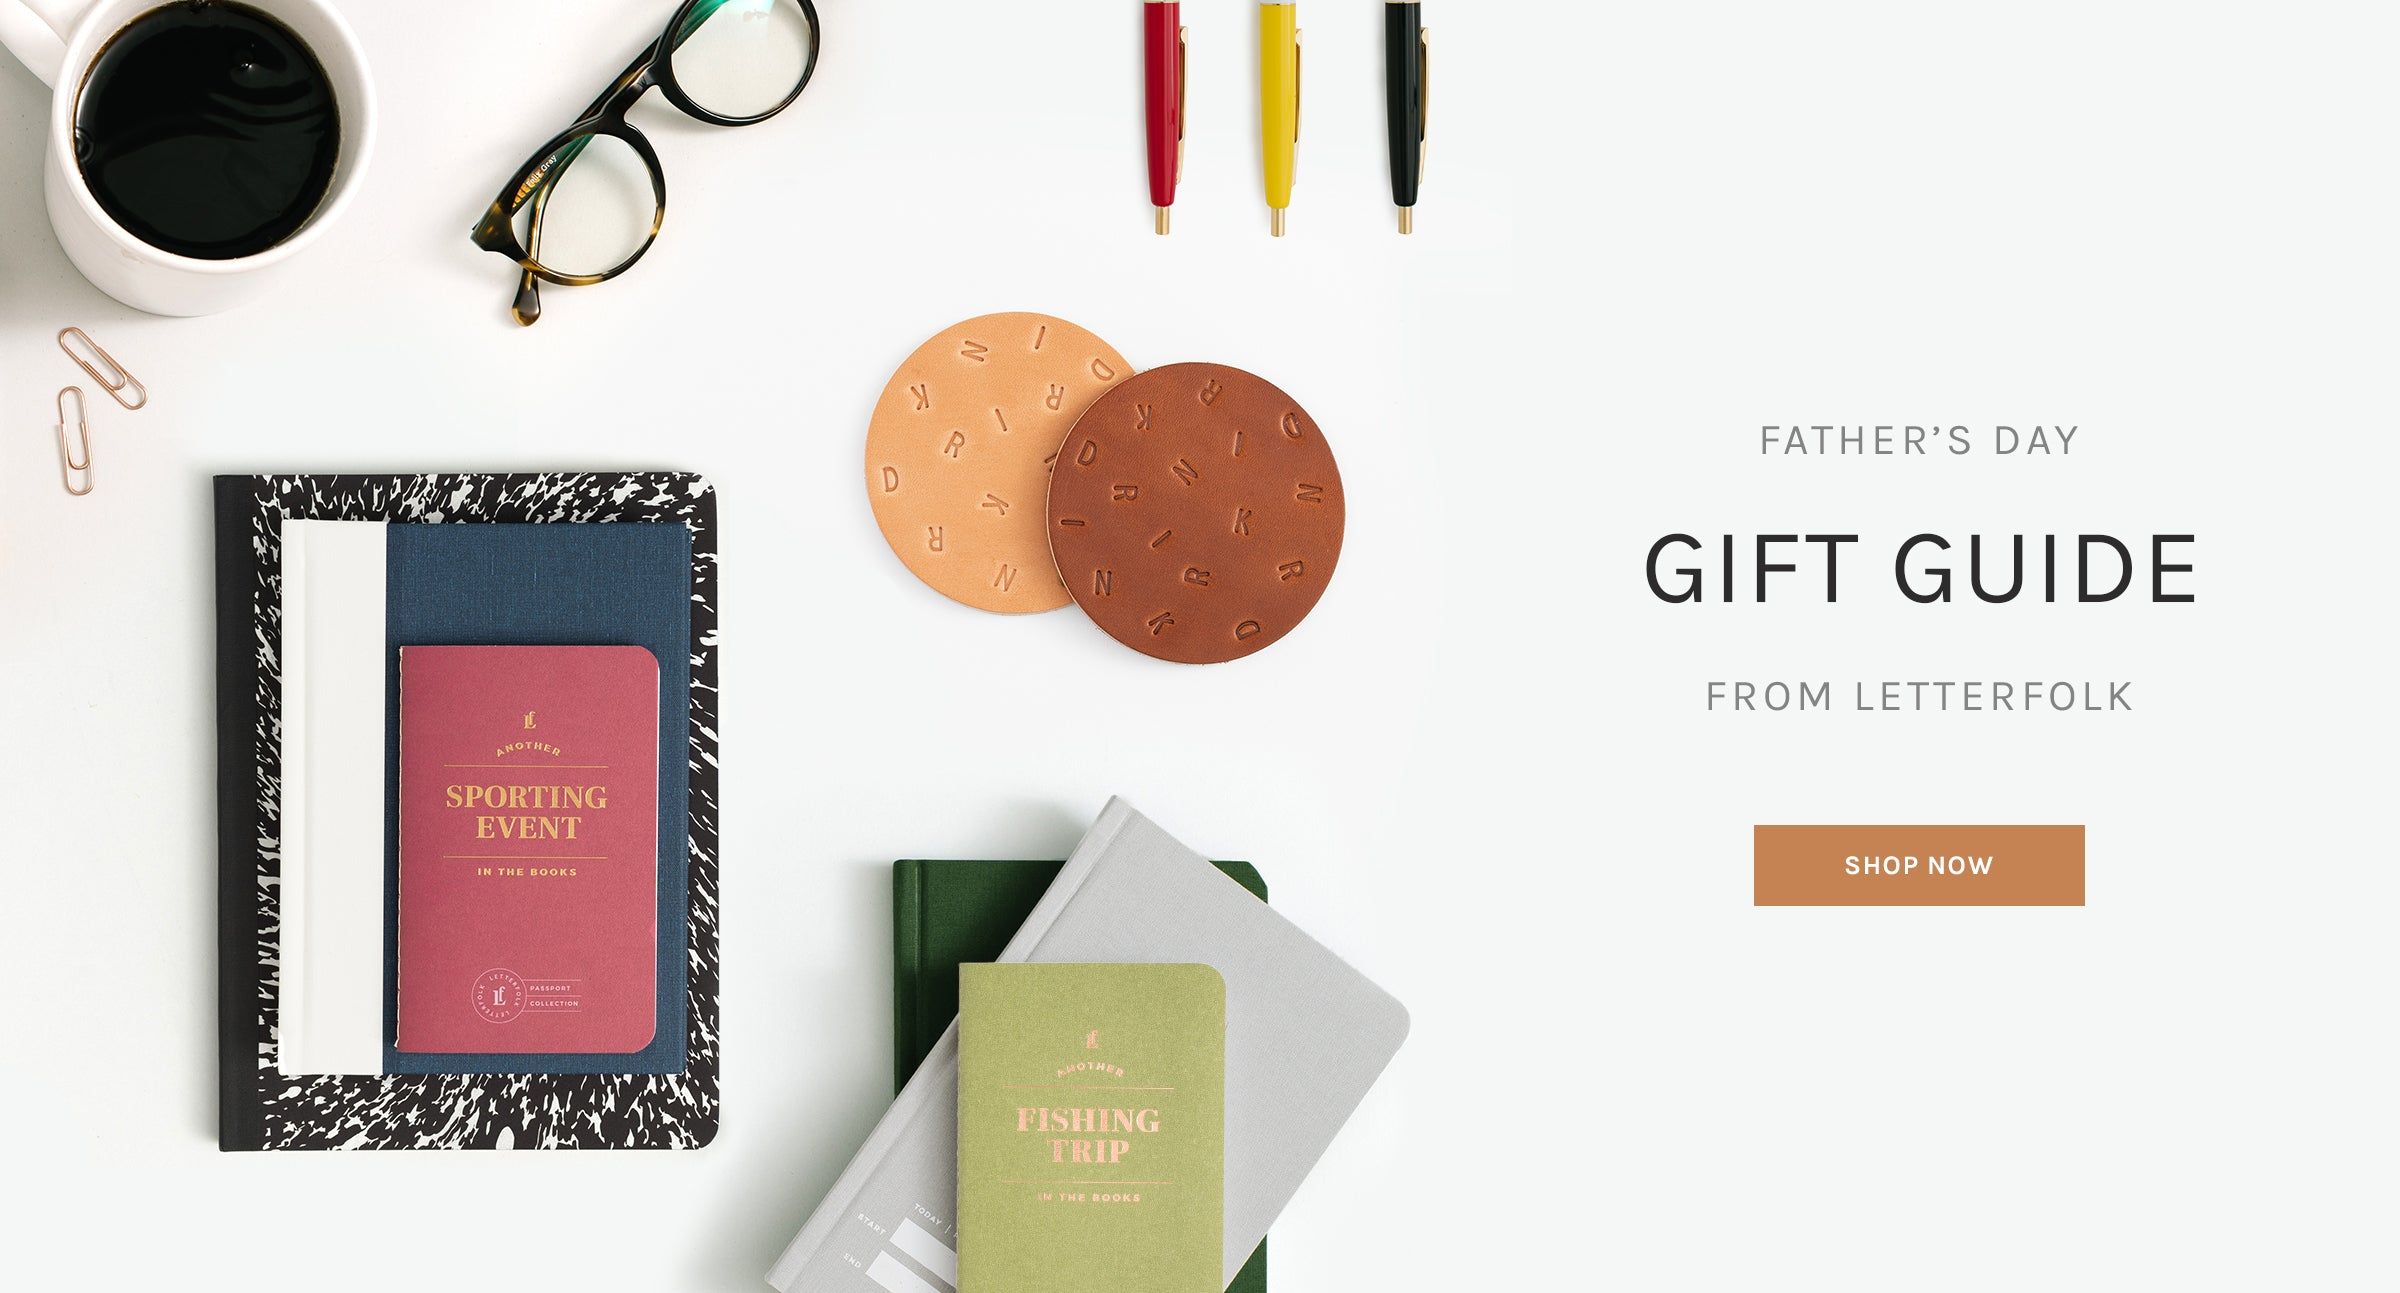 Father's Day Gift Guide from Letterfolk